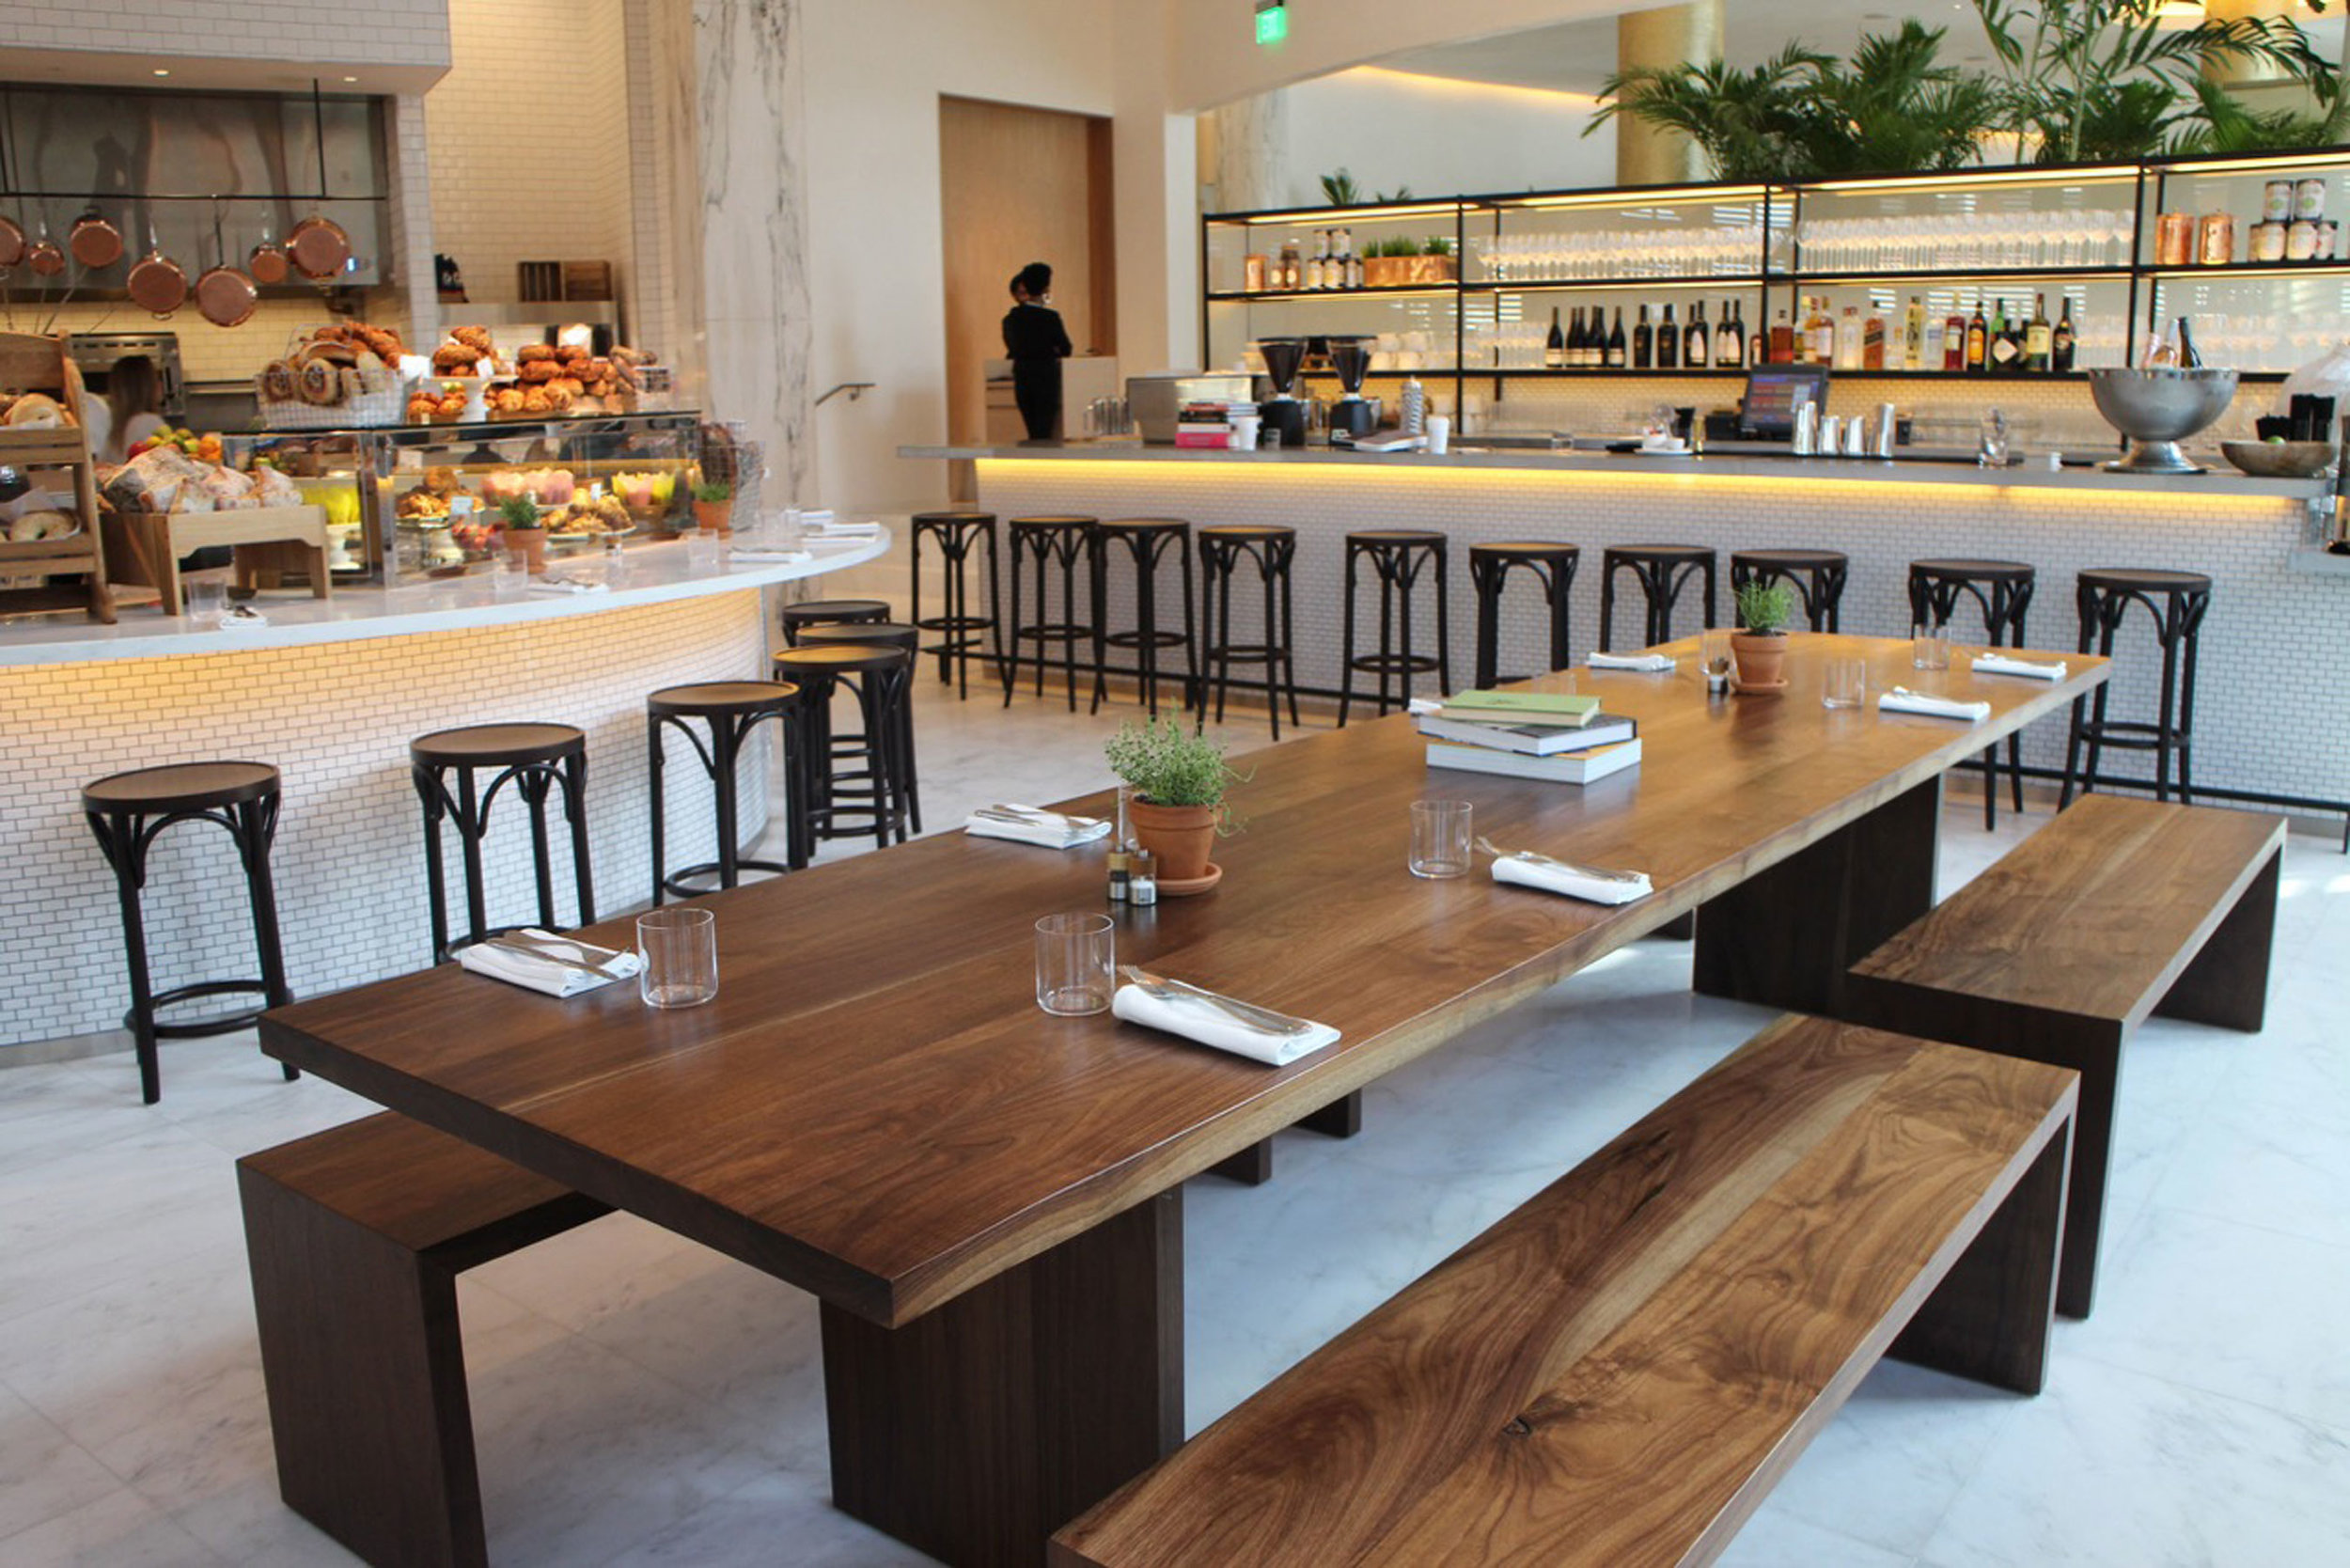 Walnut Communal Table at Miami Edition Restaurant